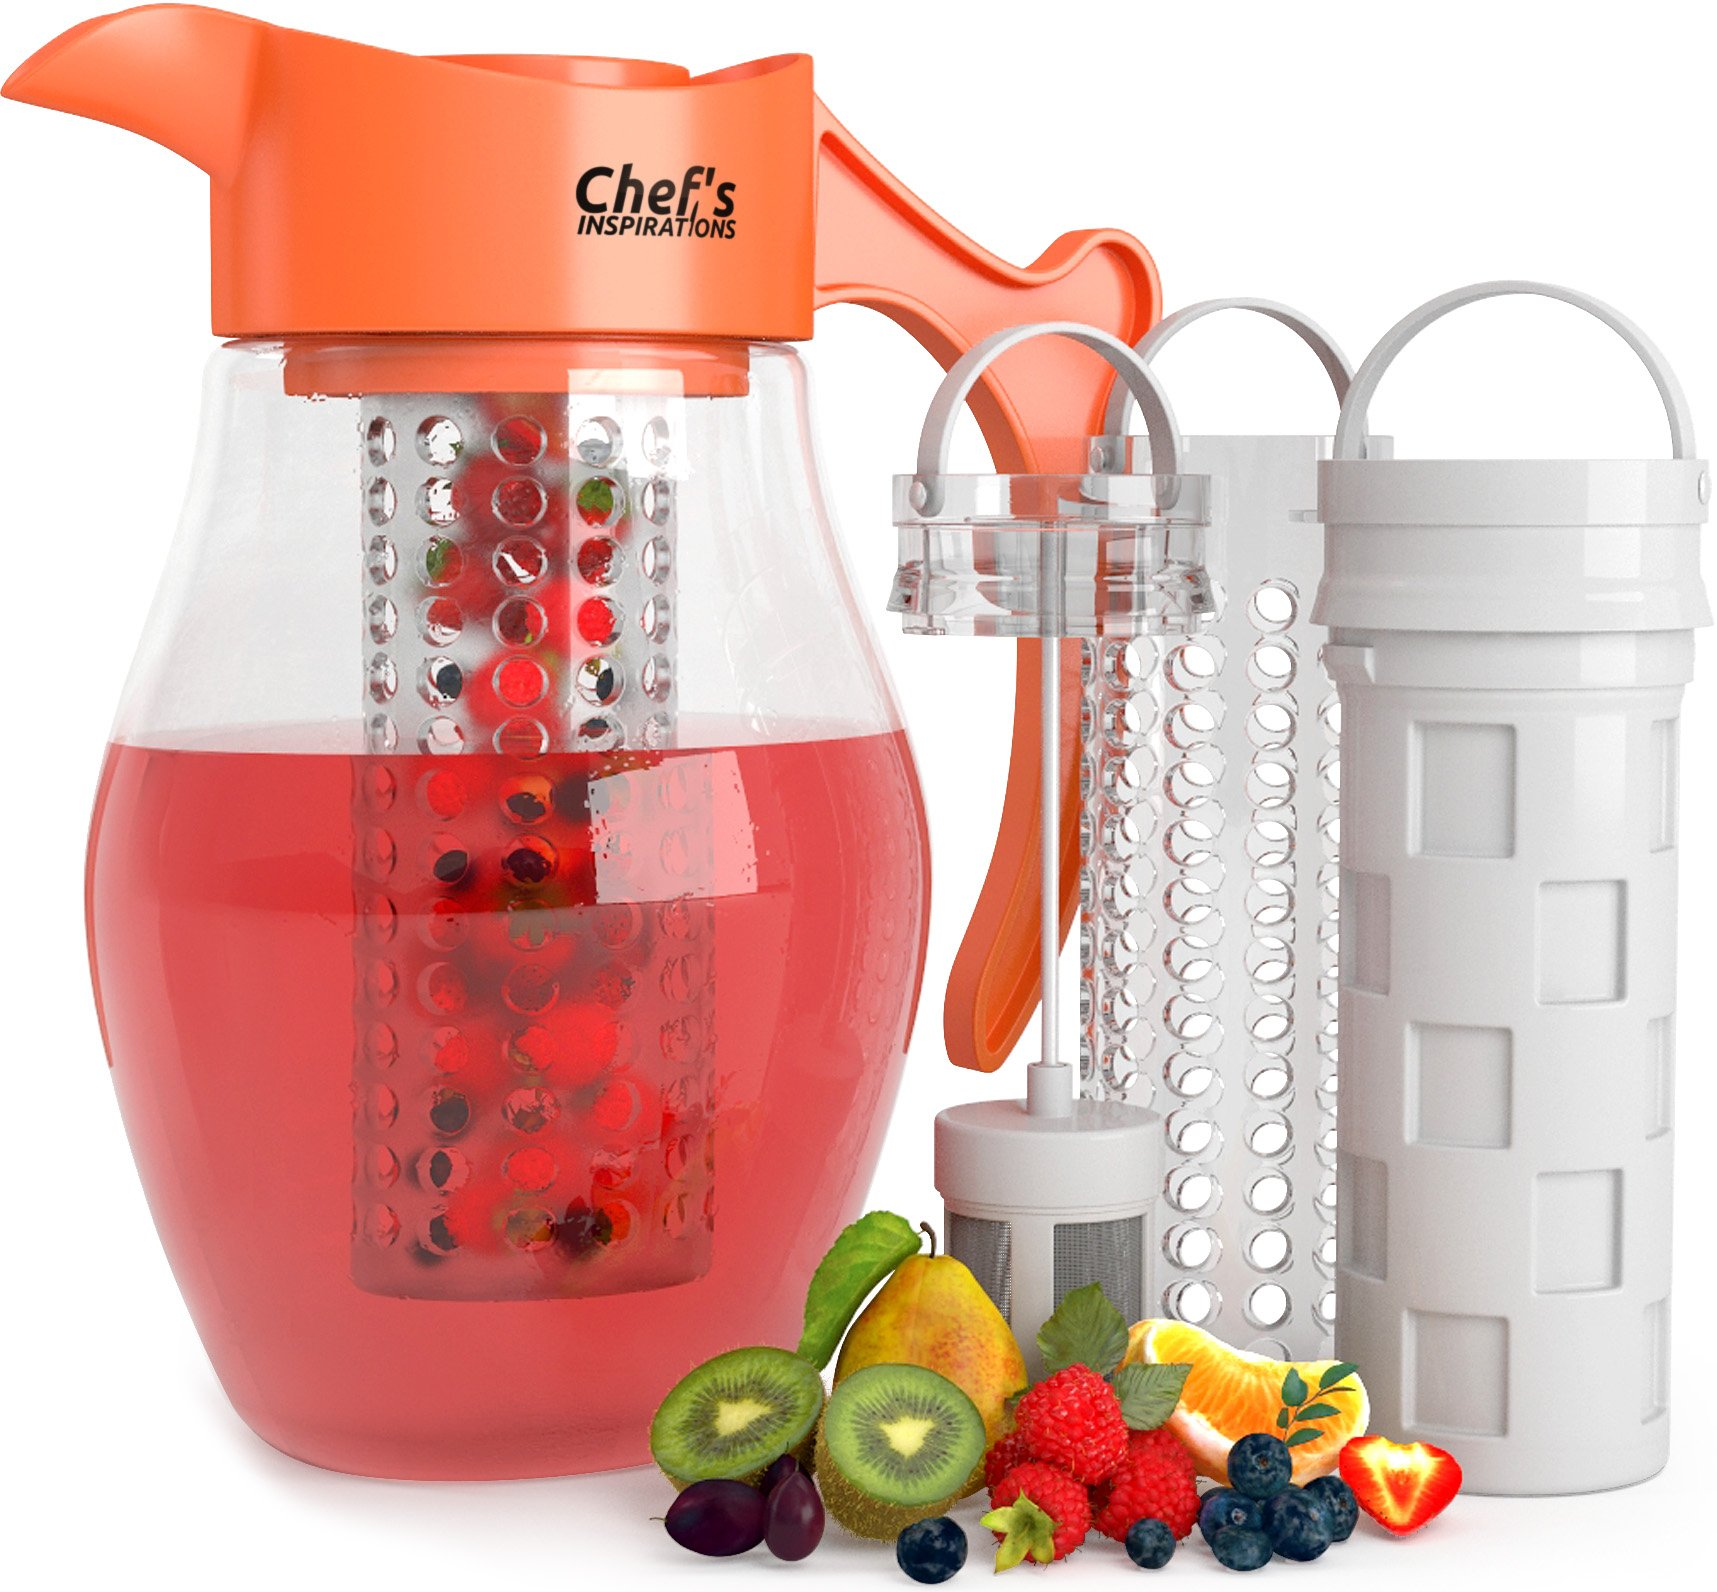 Chef's INSPIRATIONS 3 Core Infusion Water Pitcher. 3 Quart (2.8 Liters). Best For Flavored Infused Tea, Fruit or Herbs. Includes 3 Inserts for Fruit, Tea & Ice. Bonus Infuser Recipe eBook. by Chef's INSPIRATIONS